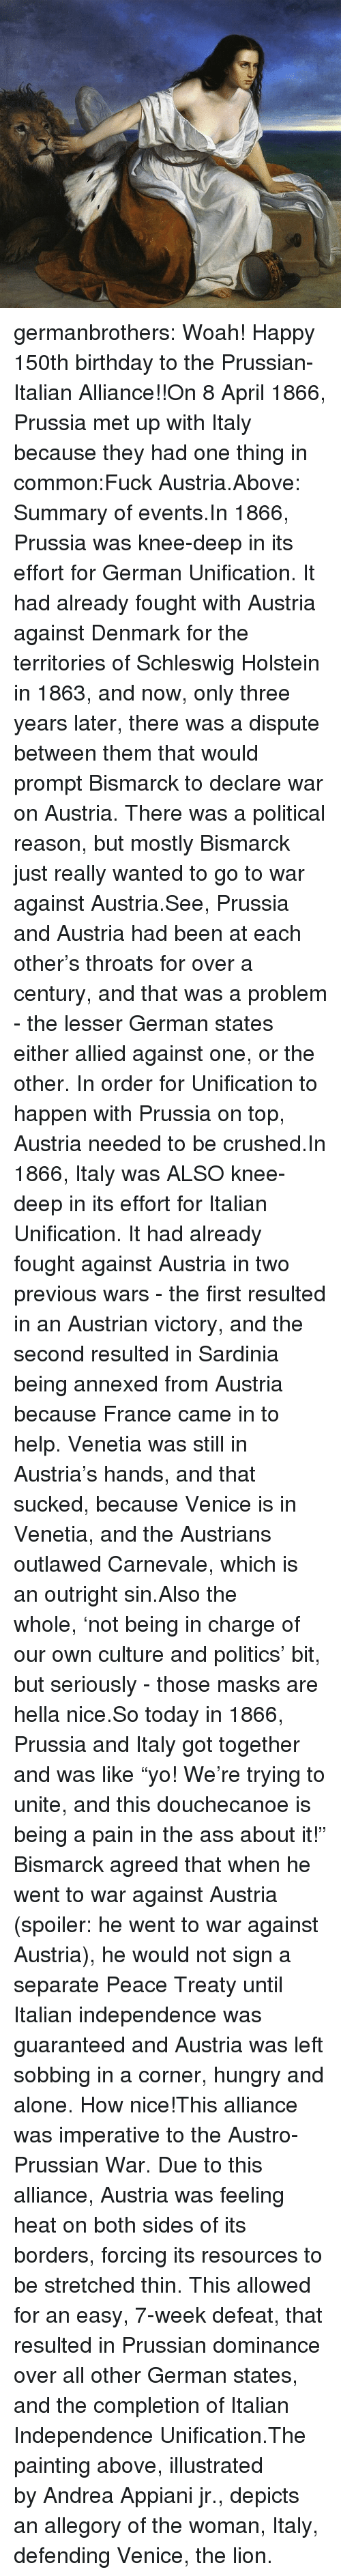 """Pain In The Ass: germanbrothers:  Woah! Happy 150th birthday to the Prussian-Italian Alliance!!On 8April 1866, Prussia met up with Italy because they had one thing in common:Fuck Austria.Above: Summary of events.In 1866, Prussia was knee-deep in its effort for German Unification. It had already fought with Austria against Denmark for the territories of Schleswig  Holstein in 1863, and now, only three years later, there was a dispute between them that would prompt Bismarck to declare war on Austria. There was a political reason, but mostly Bismarck just really wanted to go to war against Austria.See, Prussia and Austria had been at each other's throats for over a century, and that was a problem - the lesser German states either allied against one, or the other. In order for Unification to happen with Prussia on top, Austria needed to be crushed.In 1866, Italy was ALSO knee-deep in its effort for Italian Unification. It had already fought against Austria in two previous wars - the first resulted in an Austrian victory, and the second resulted in Sardinia being annexed from Austria because France came in to help. Venetia was still in Austria's hands, and that sucked, because Venice is in Venetia, and the Austrians outlawed Carnevale, which is an outright sin.Also the whole,'not being in charge of our own culture and politics' bit, but seriously - those masks are hella nice.So today in 1866, Prussia and Italy got together and was like""""yo! We're trying to unite, and this douchecanoe is being a pain in the ass about it!"""" Bismarck agreed that when he went to war against Austria (spoiler: he went to war against Austria), he would not sign a separate Peace Treaty until Italian independence was guaranteed and Austria was left sobbing in a corner, hungry and alone. How nice!This alliance was imperative to the Austro-Prussian War. Due to this alliance, Austria was feeling heat on both sides of its borders, forcing its resources to be stretched thin. This allowed for an easy, 7-"""